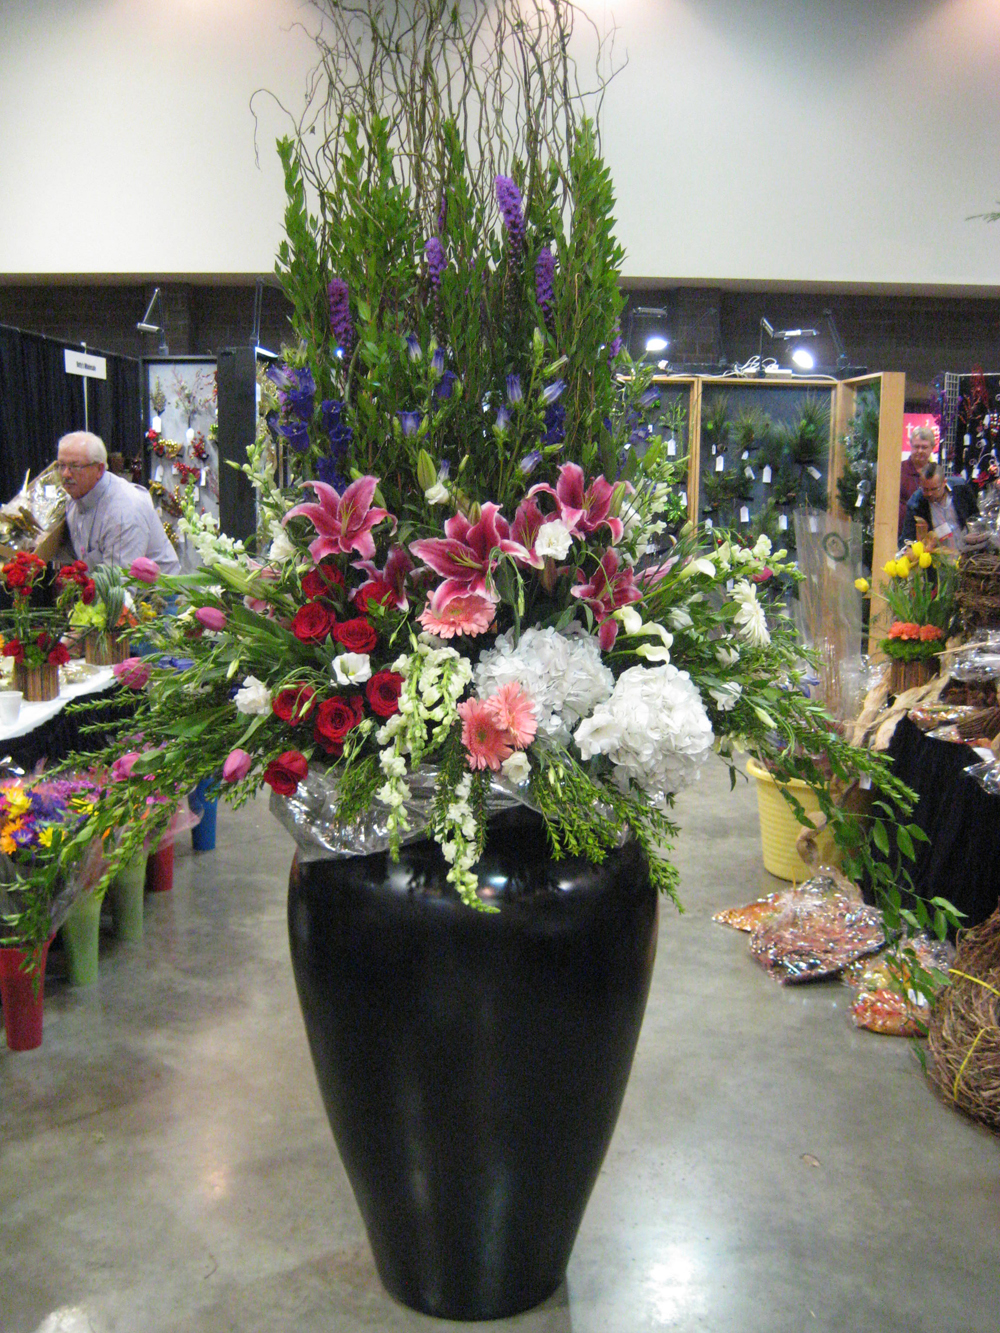 Fsn at the 2012 arkansas florist association convention large floral display in the trade show by larry bates of the arrangement hot springs 2012 arkansas florist mightylinksfo